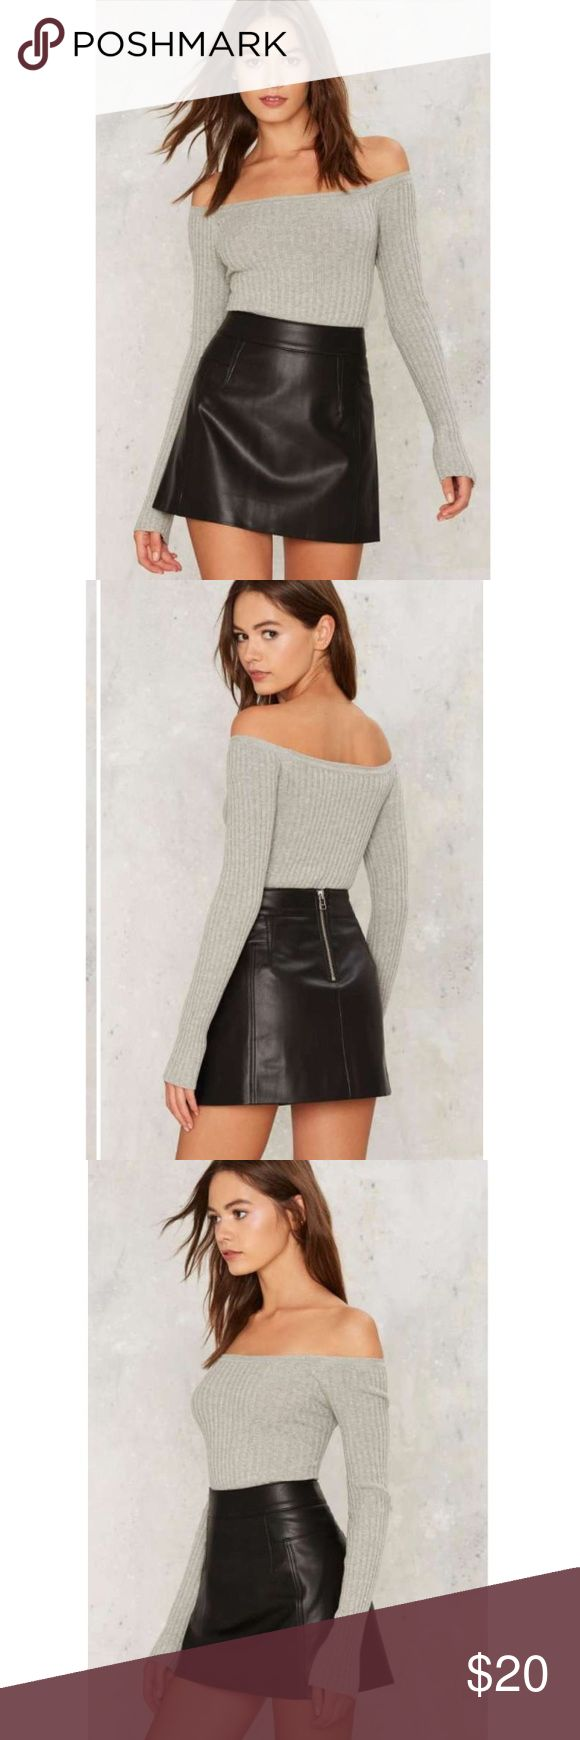 🔥🔥🔥 Black leather a-line skirt 🔥🔥🔥 Great girly but edgy skirt ❤ good condition Hollister Skirts A-Line or Full